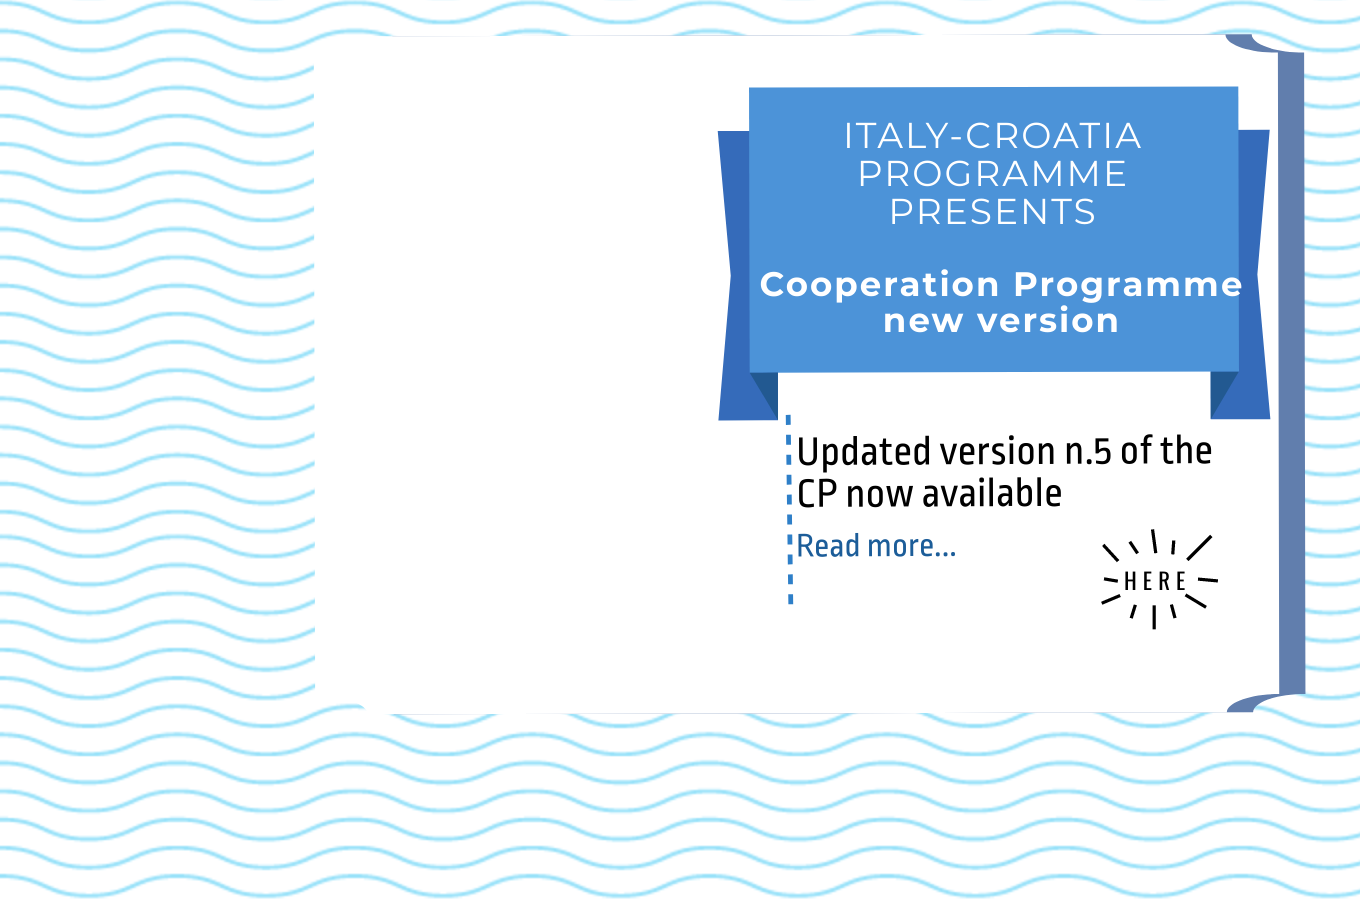 EC approves the version n. 5 of the Italy-Croatia Cooperation Programme